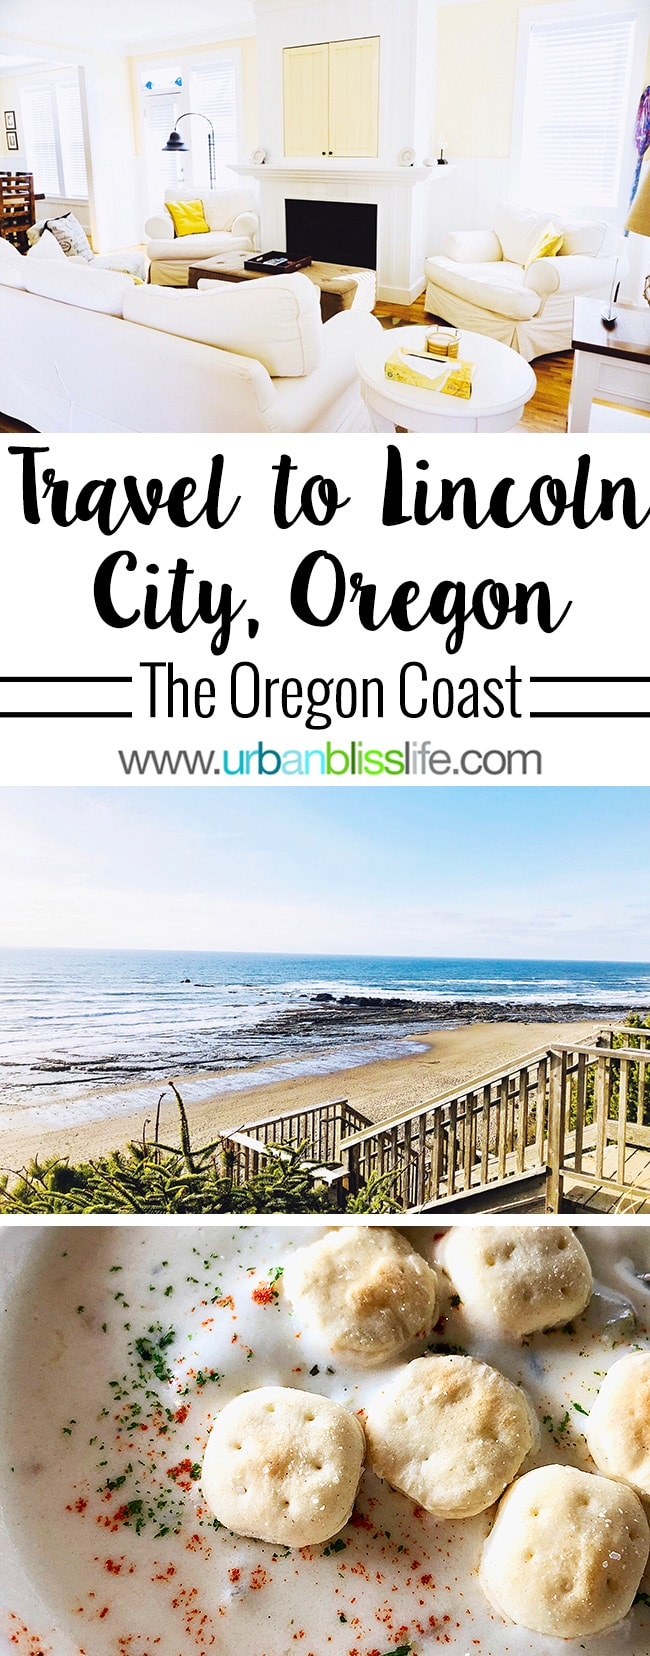 Oregon Coast Travel Guide: Lincoln City, Oregon